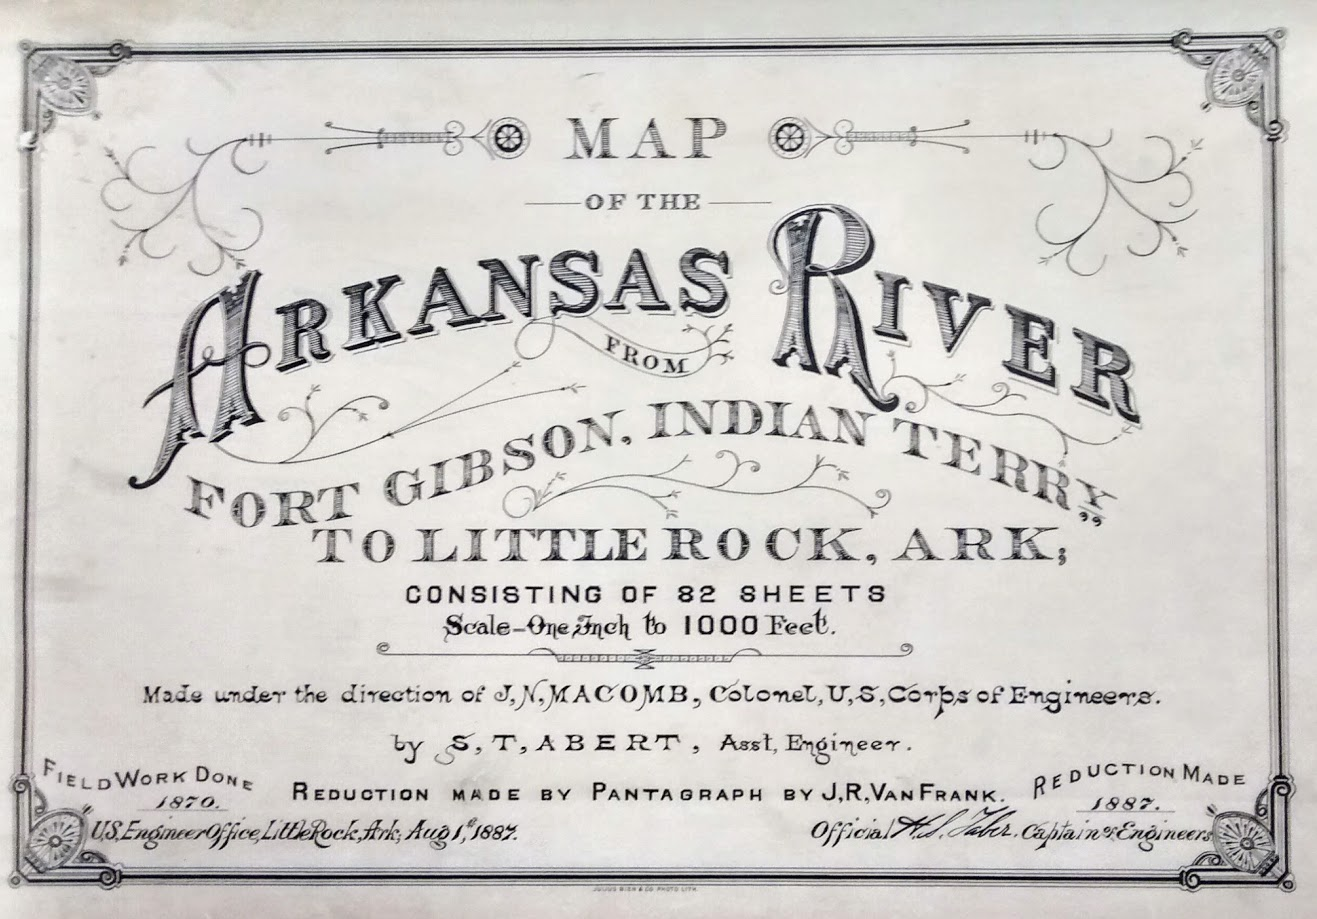 1886 Arkansas River